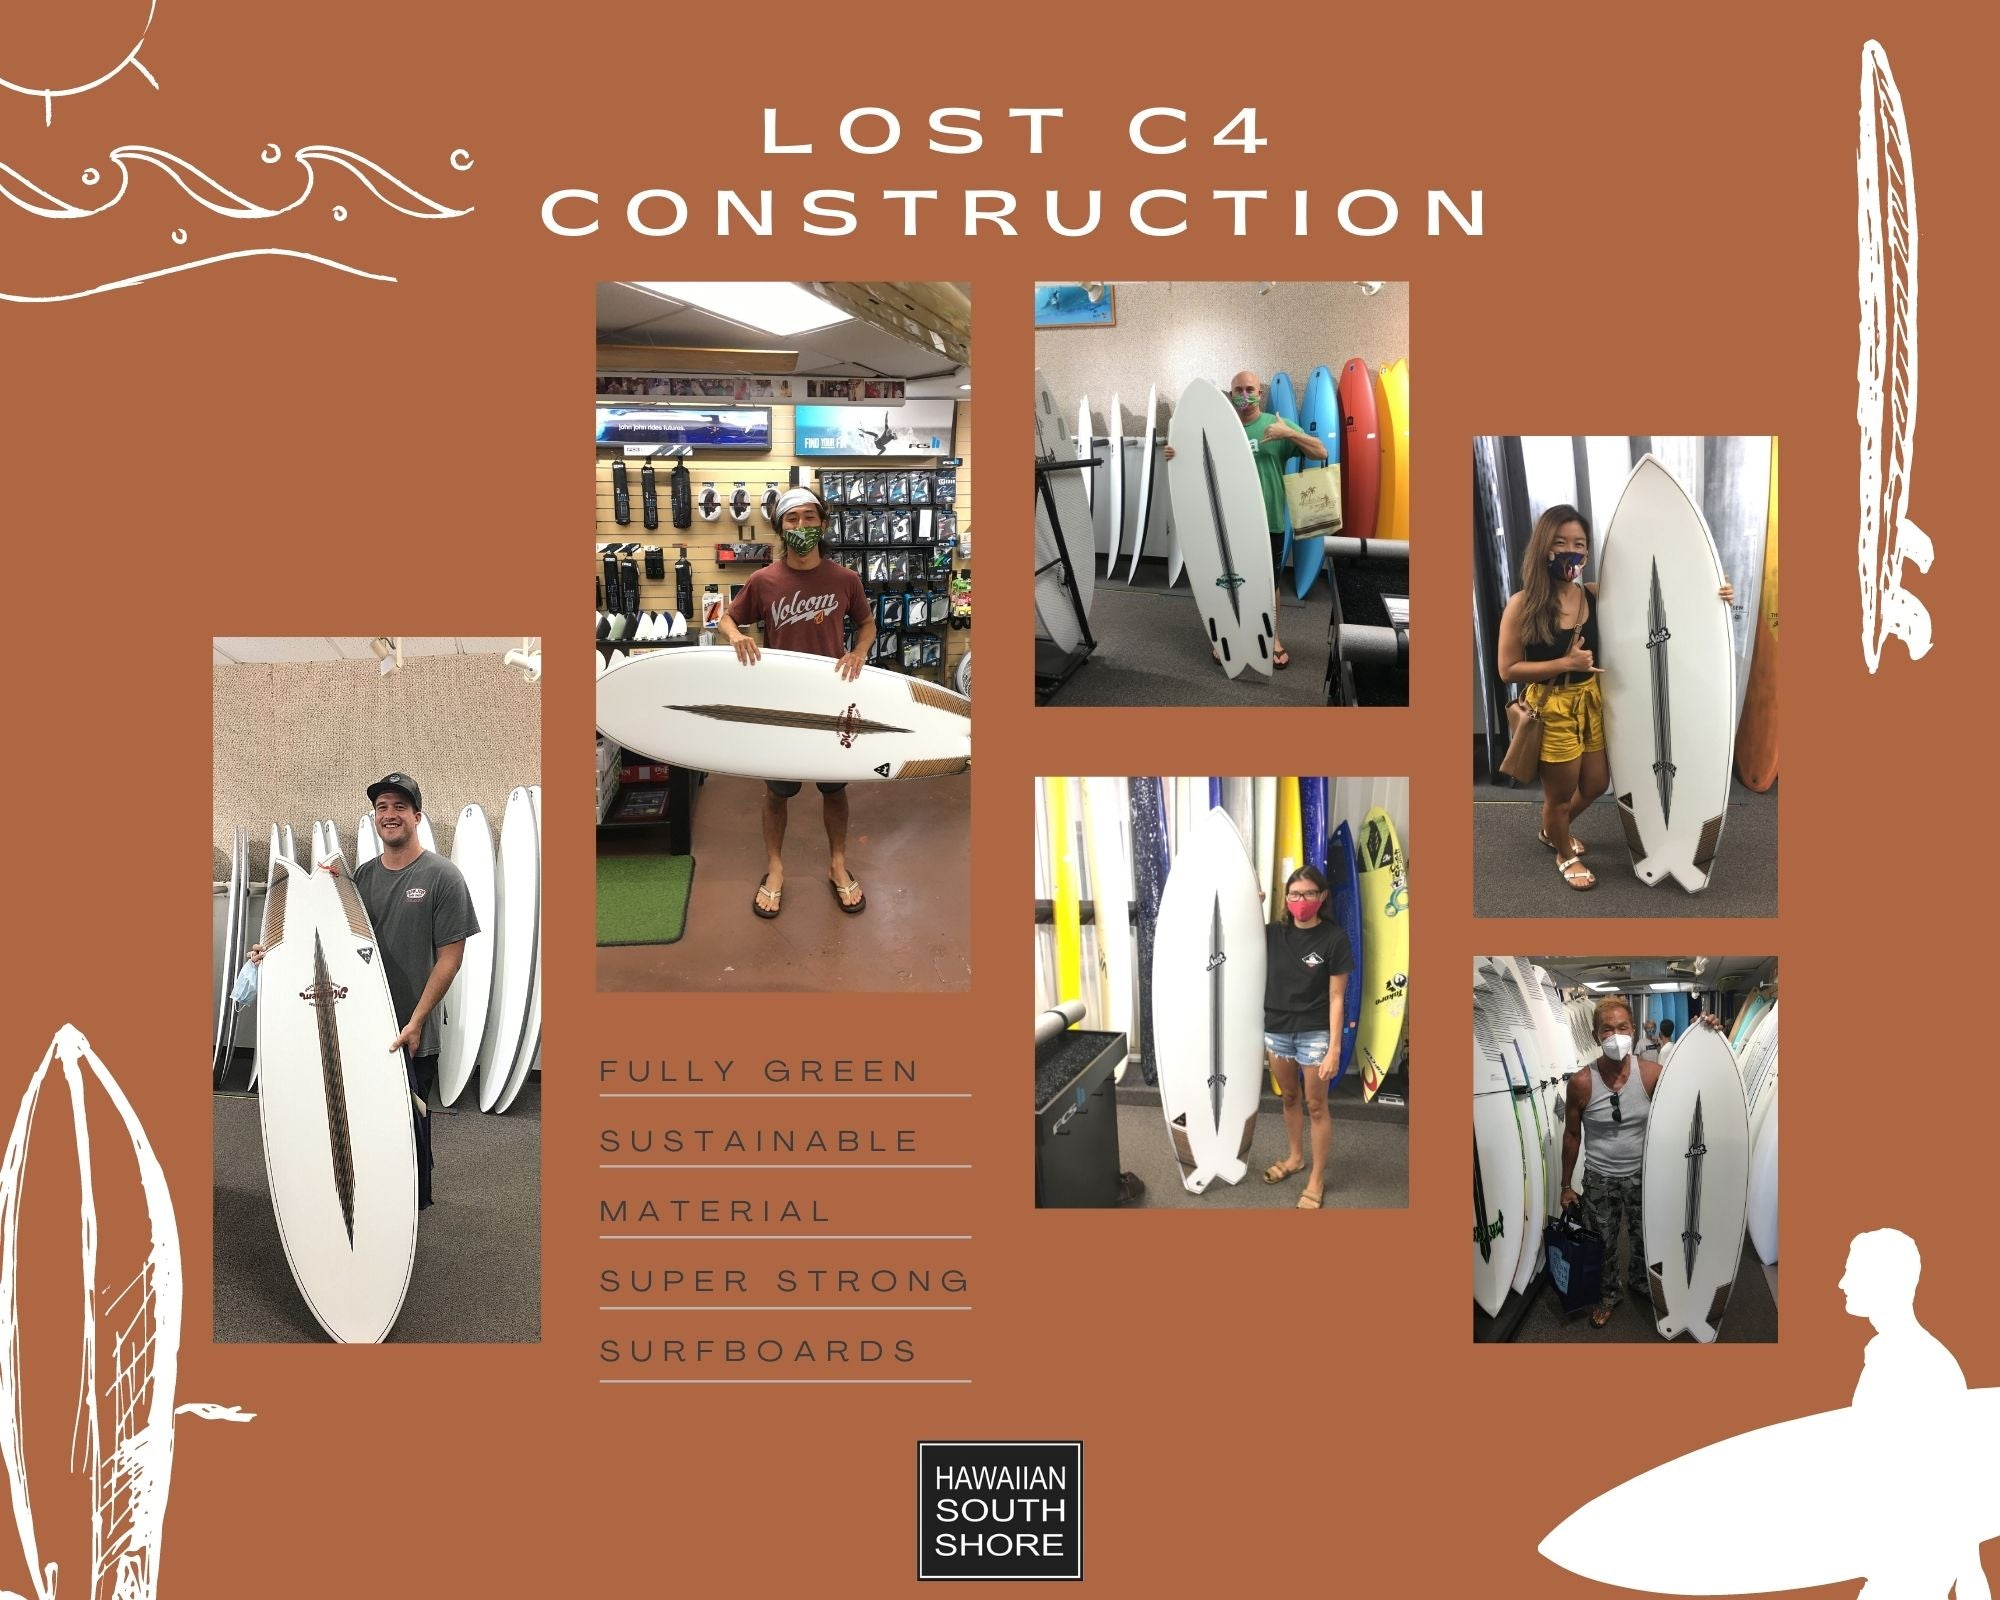 lost c4 construction surfboards